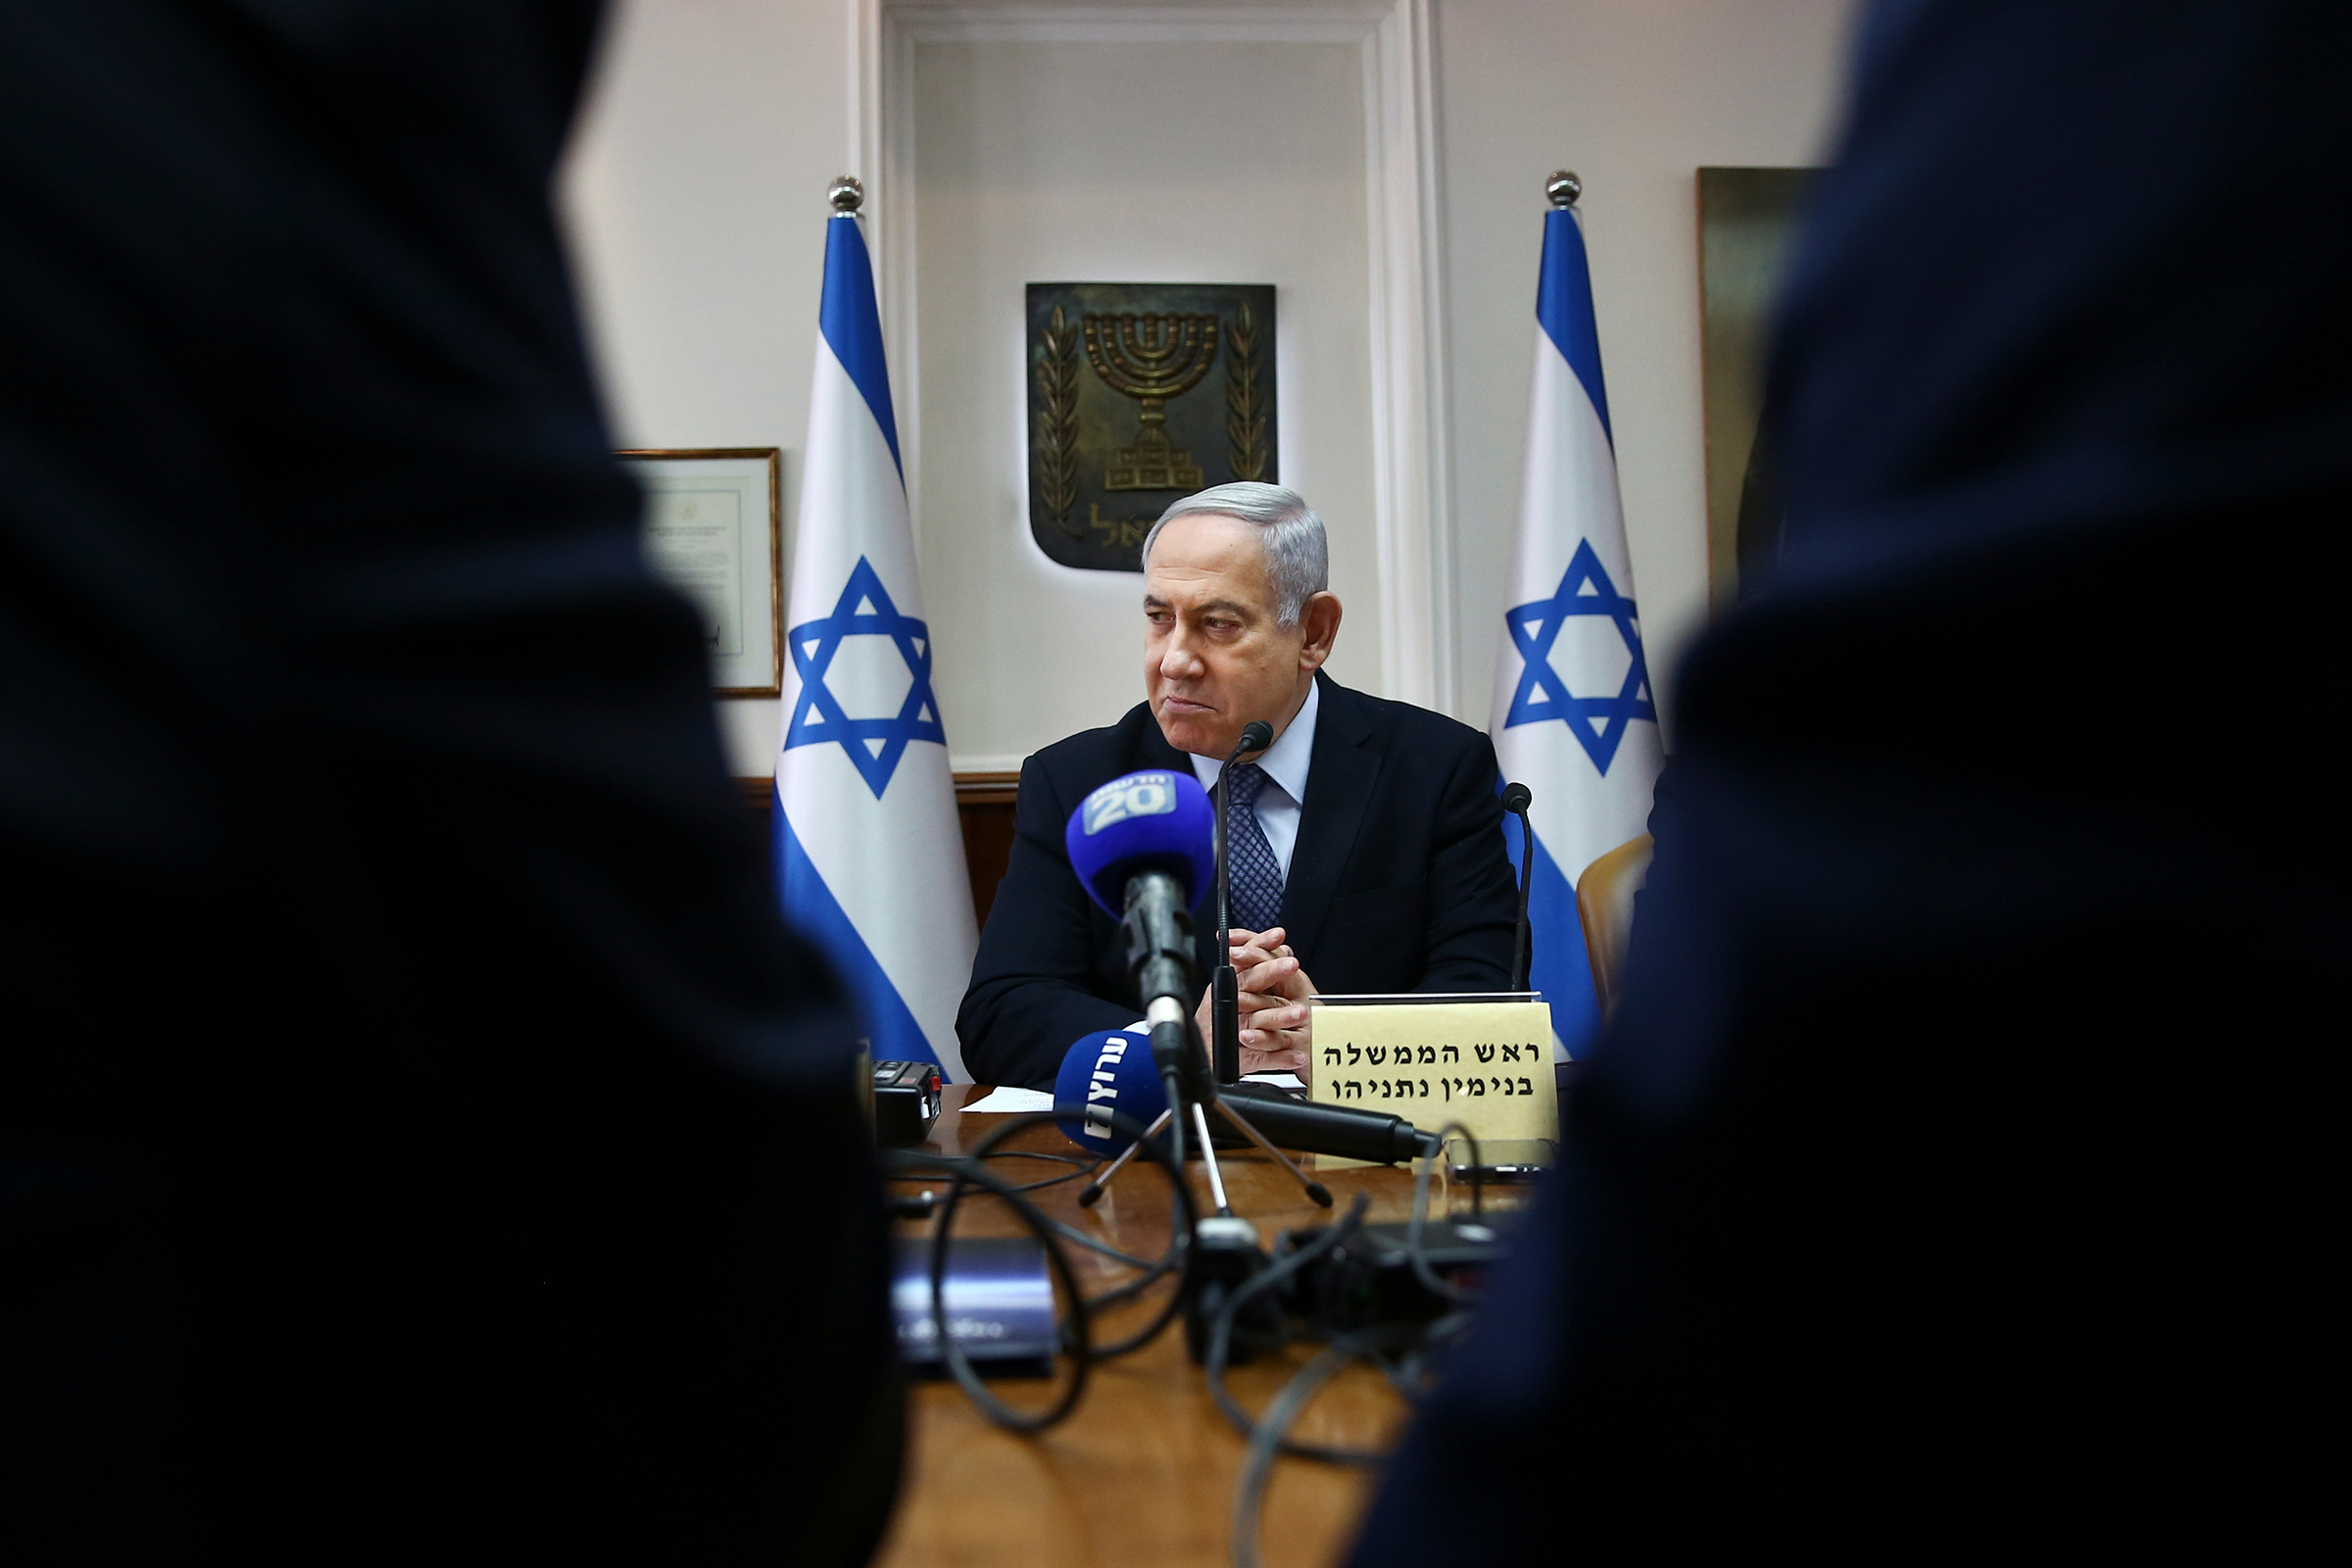 Israeli Prime Minister Benjamin Netanyahu chairing the weekly cabinet meeting at the Prime Minister's office in Jerusalem on Nov. 3, 2019.